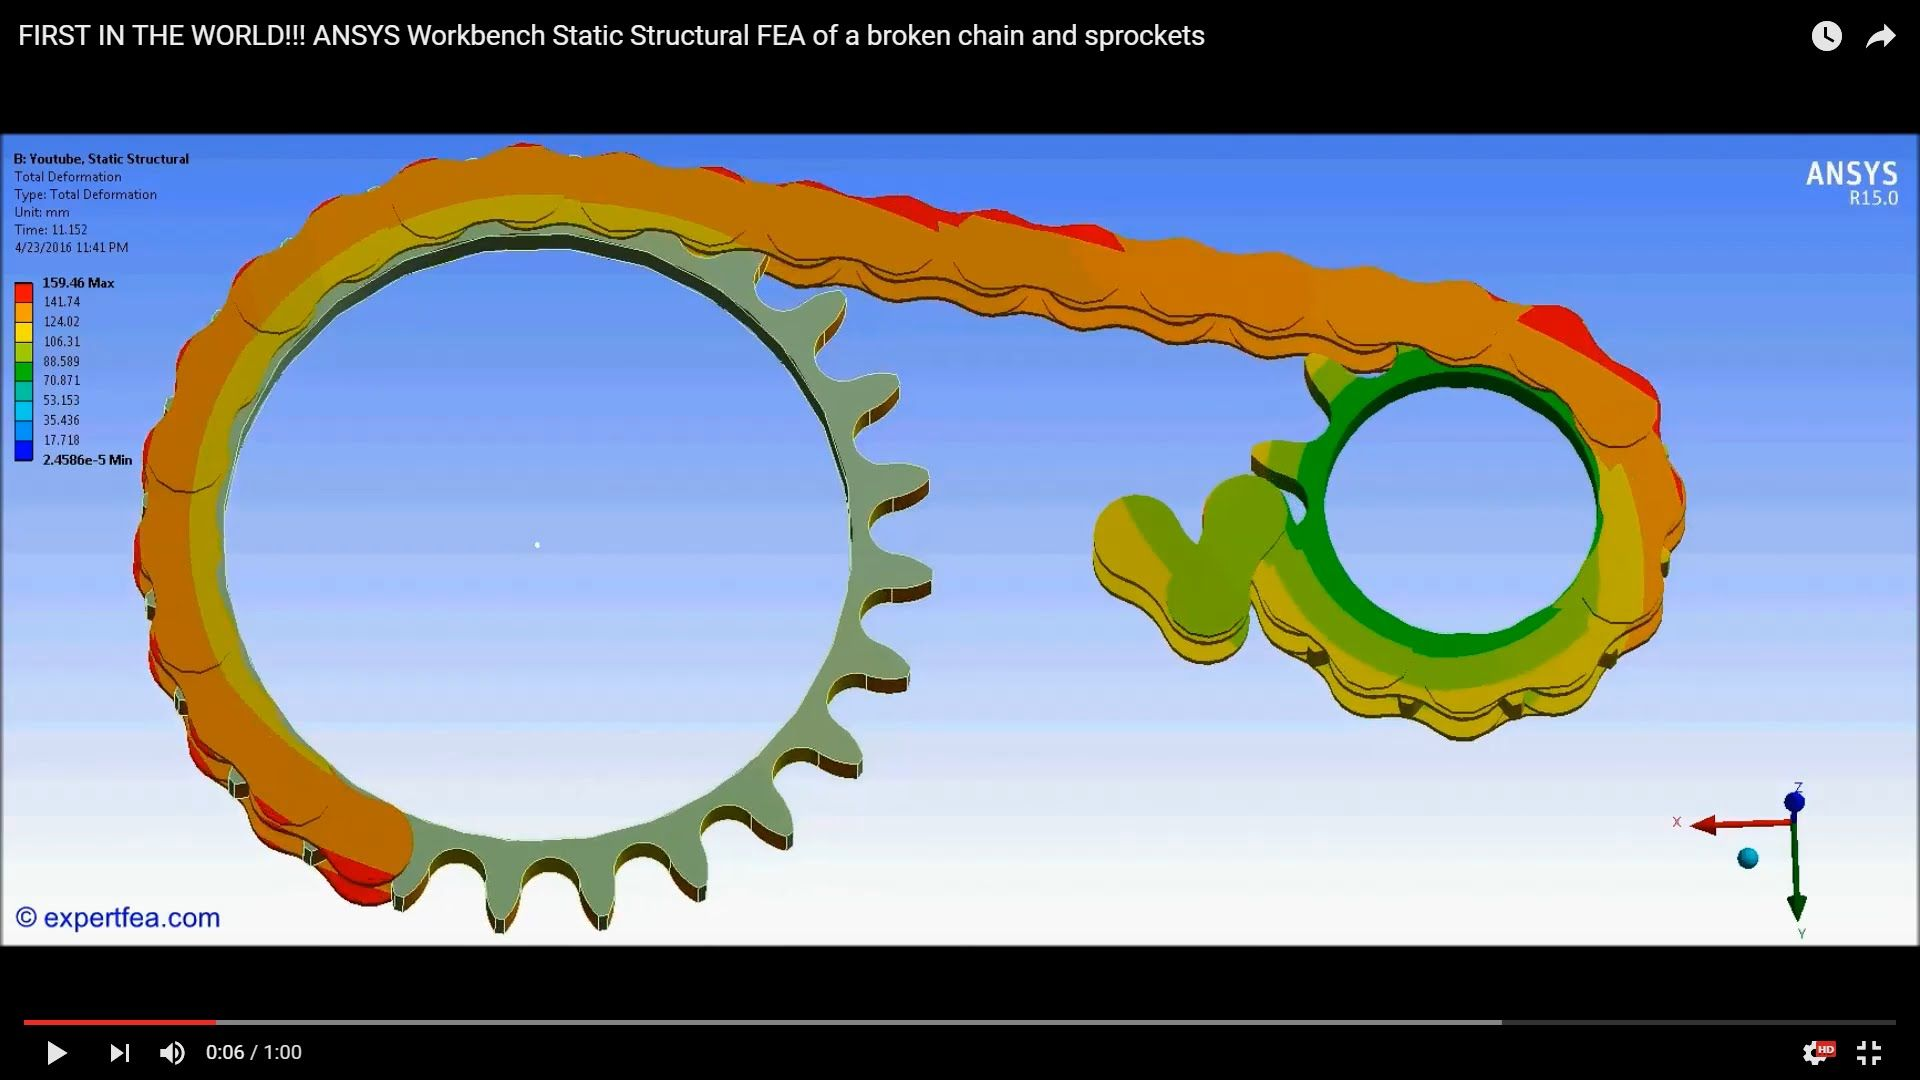 FIRST IN THE WORLD!!! ANSYS Workbench Static Structural FEA